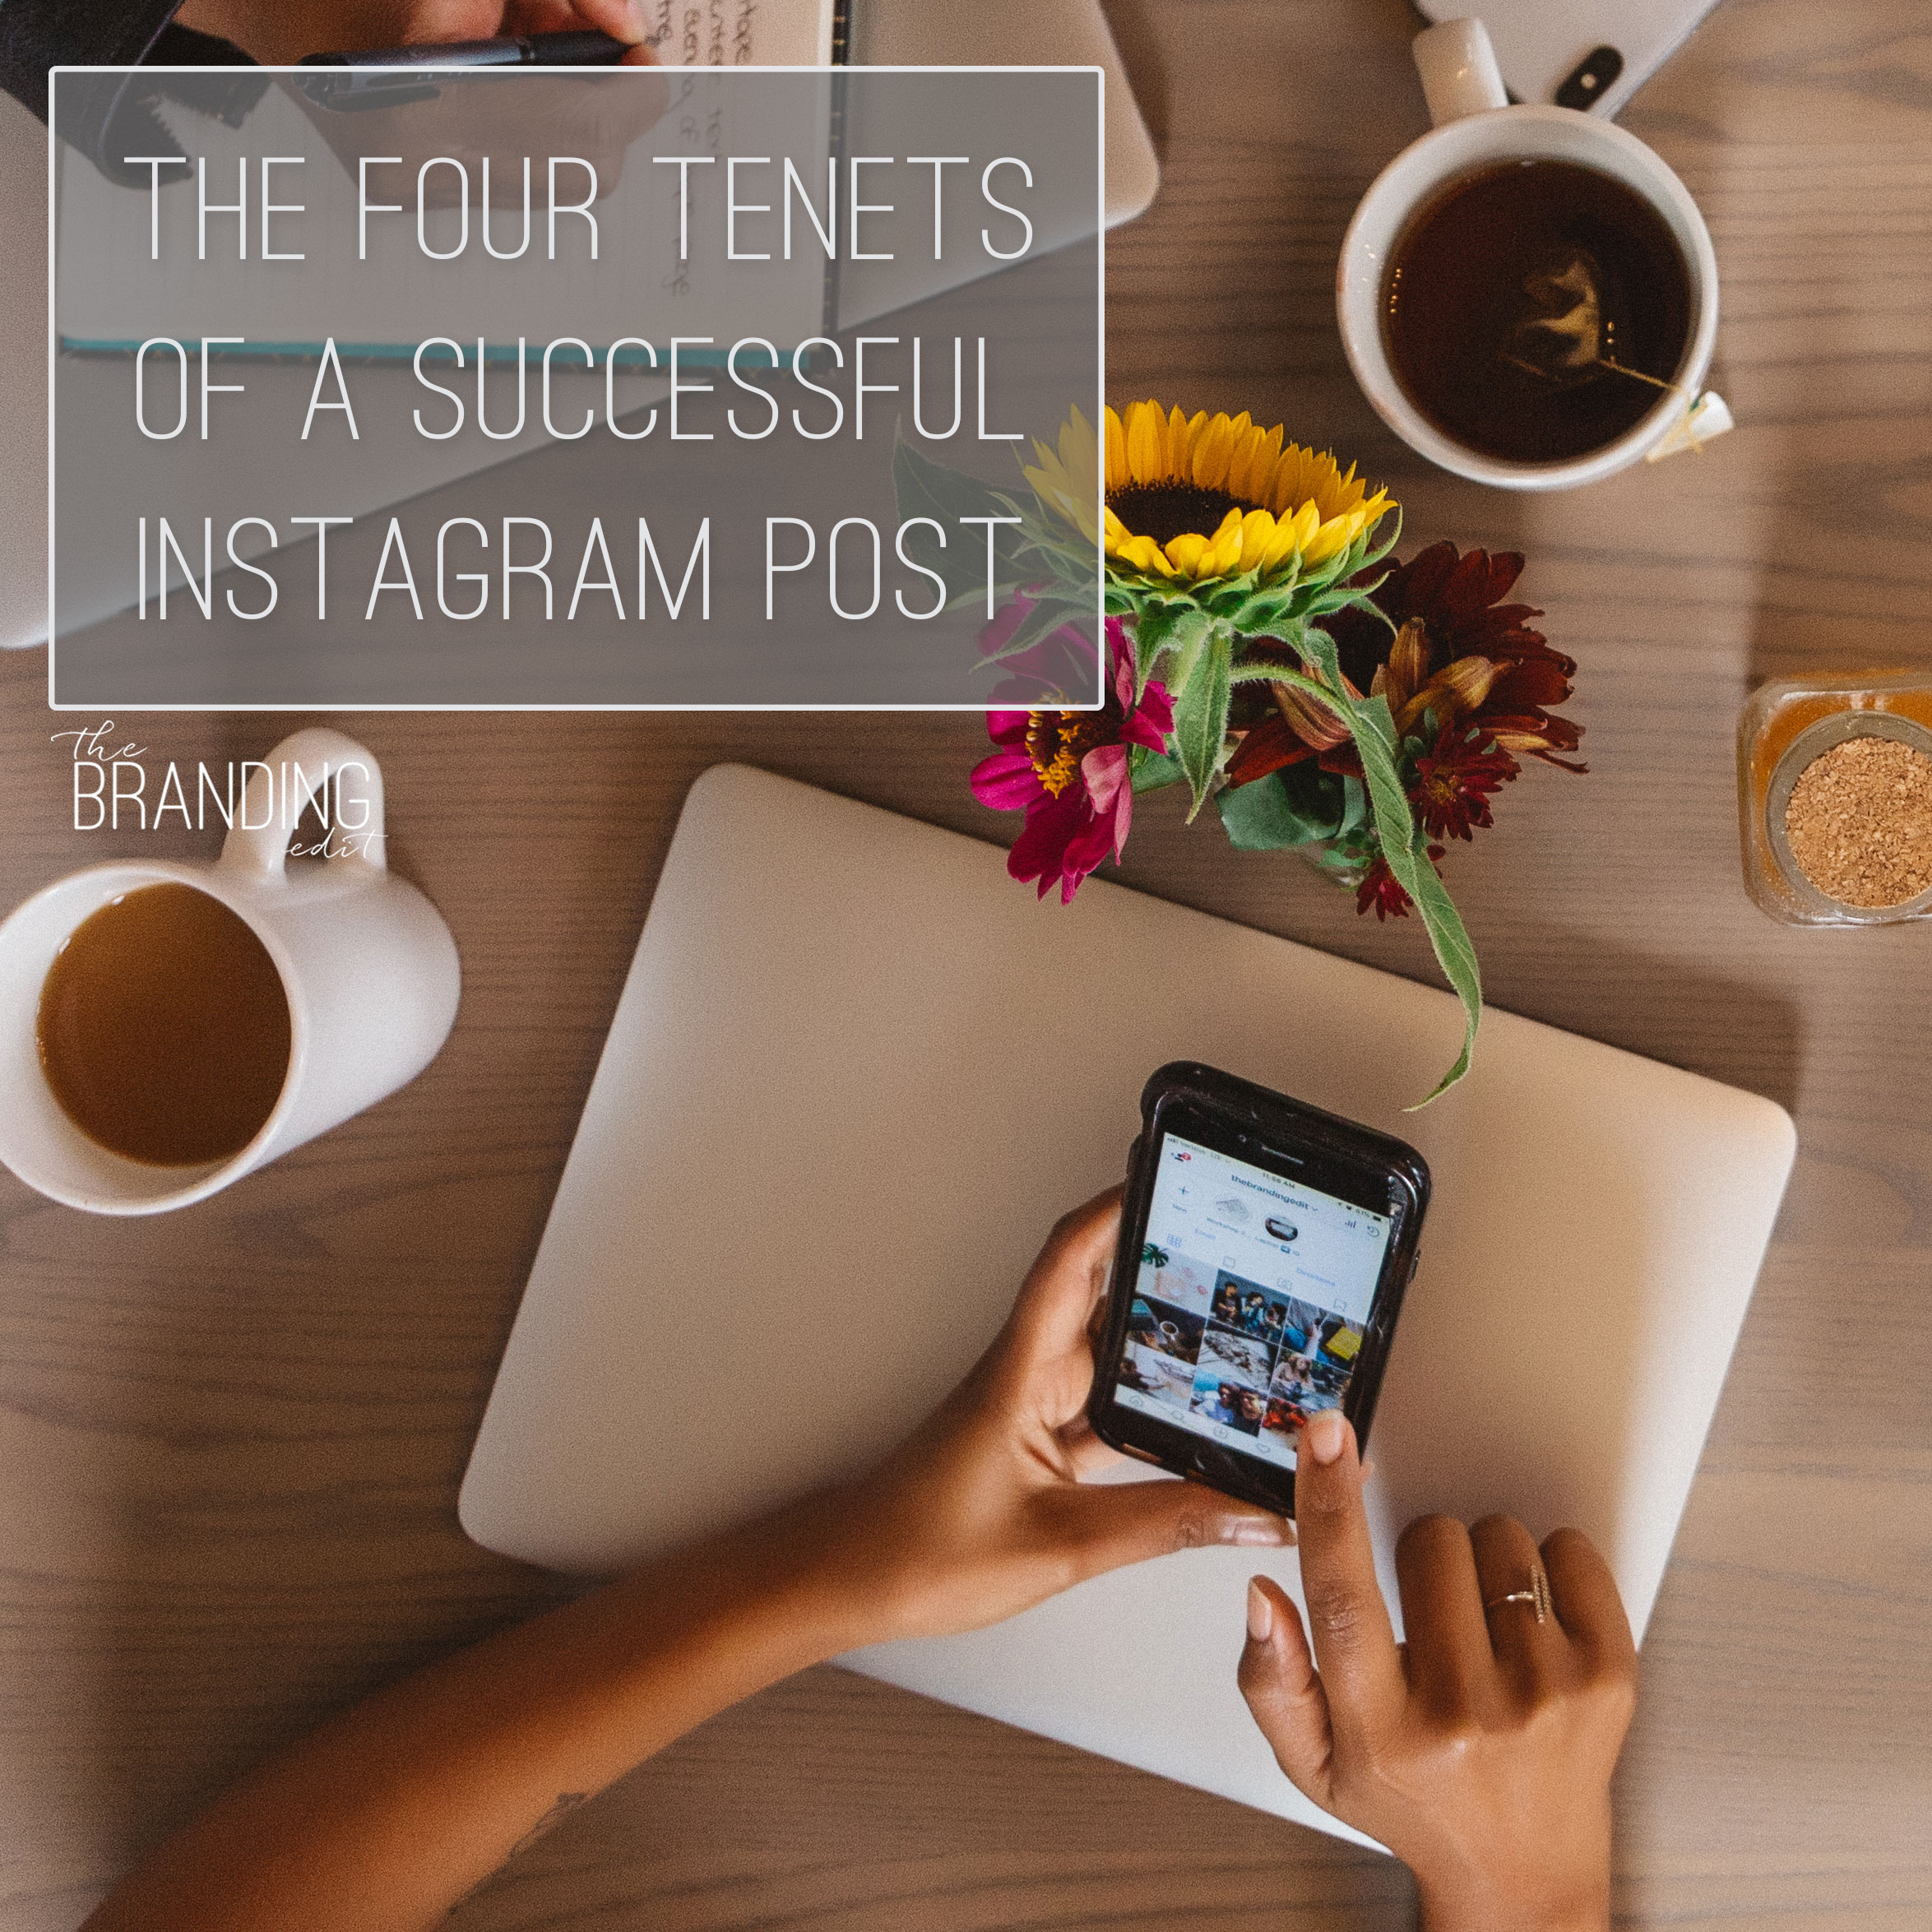 The-Four-Tenets-of-a-Successful-Instagram-Post.jpg